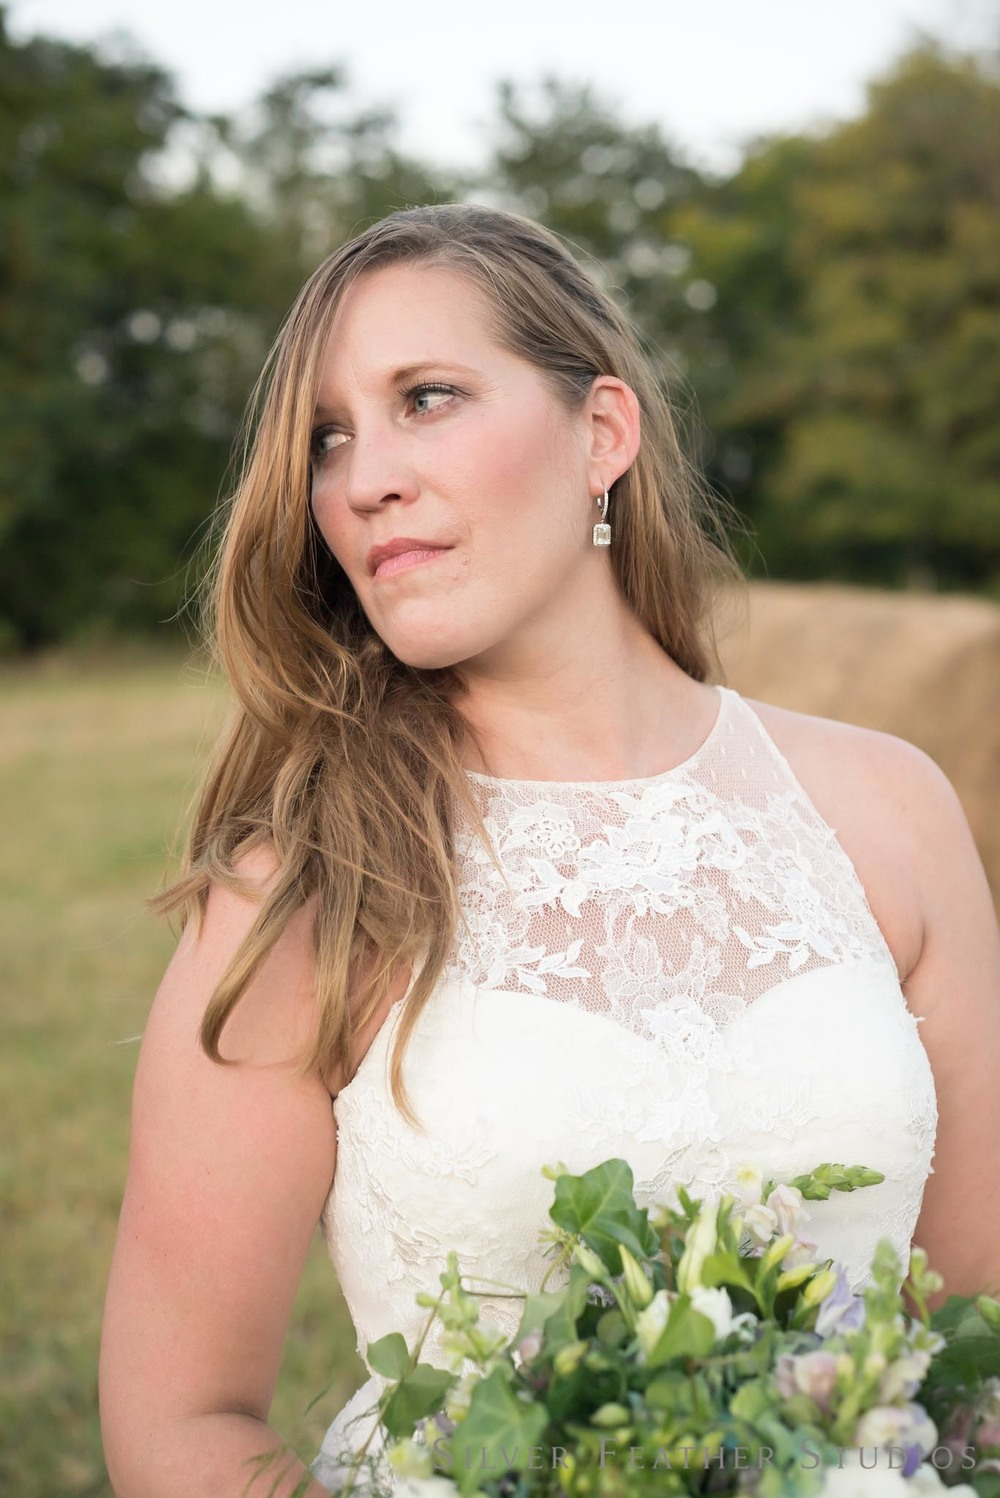 The stunning bride erin at her wedding at Seven Cedars Farm. Photography by Burlington wedding photographer, Silver Feather Studios